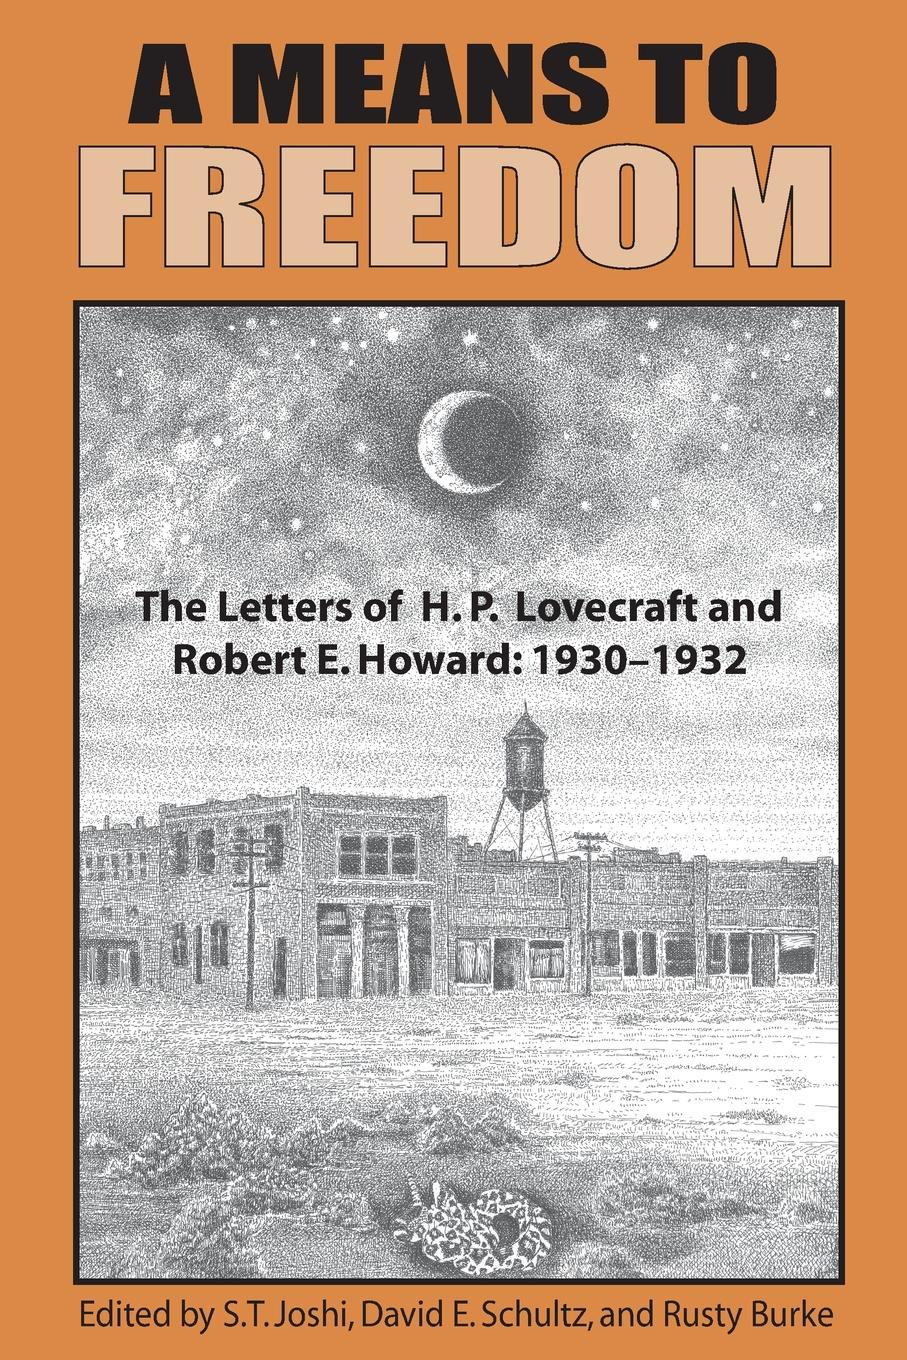 H. P. Lovecraft, Robert E. Howard A Means to Freedom. The Letters of H. P. Lovecraft and Robert E. Howard (Volume 1) h p lovecraft the cats of ulthar